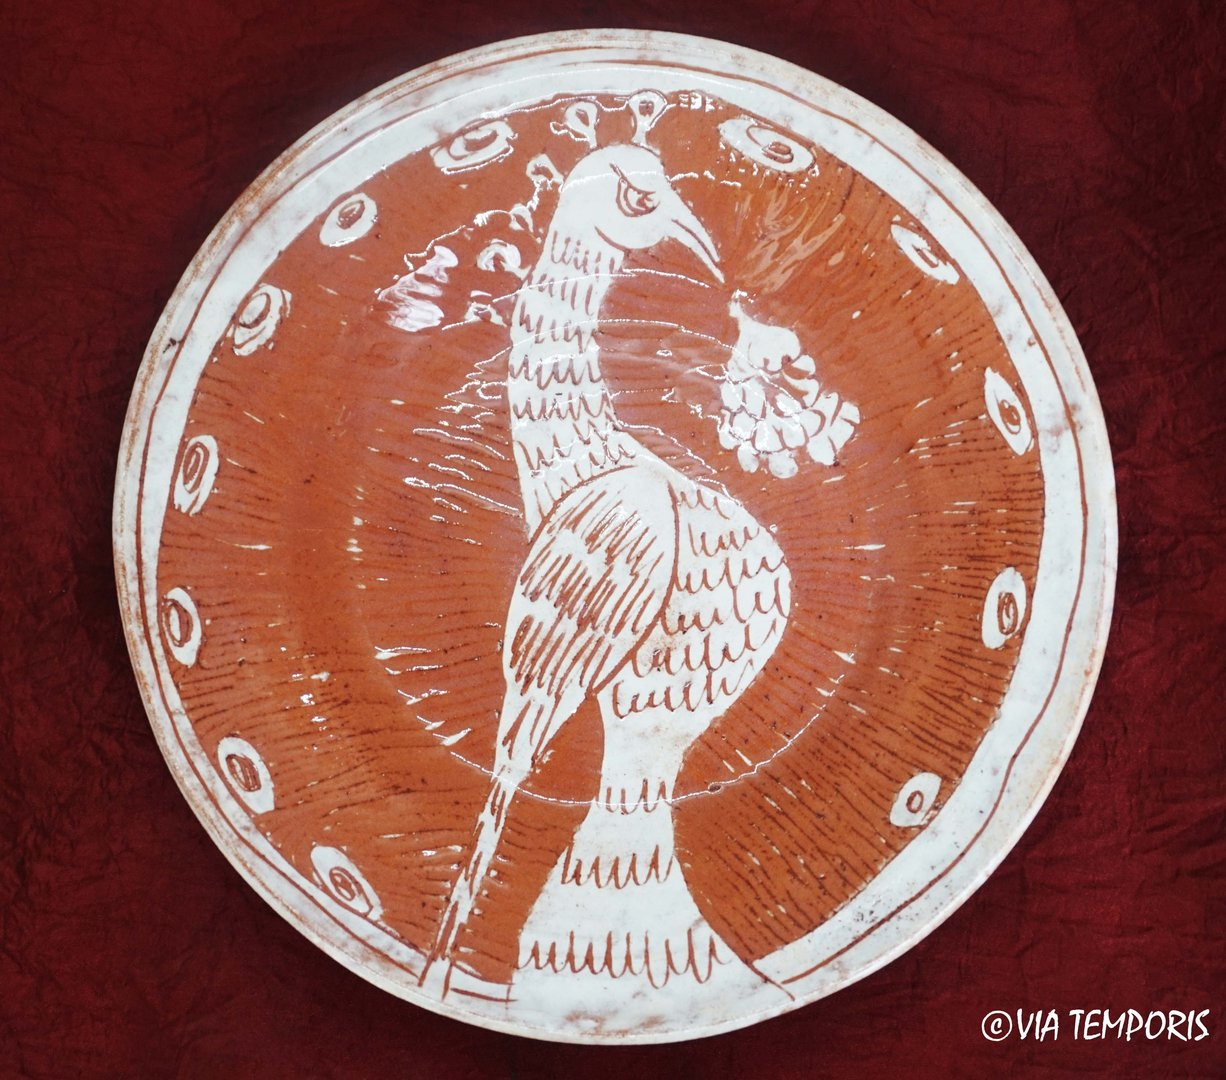 MEDIEVAL POTTERY - MAJOLICA PLATE WITH BIRD DECOR